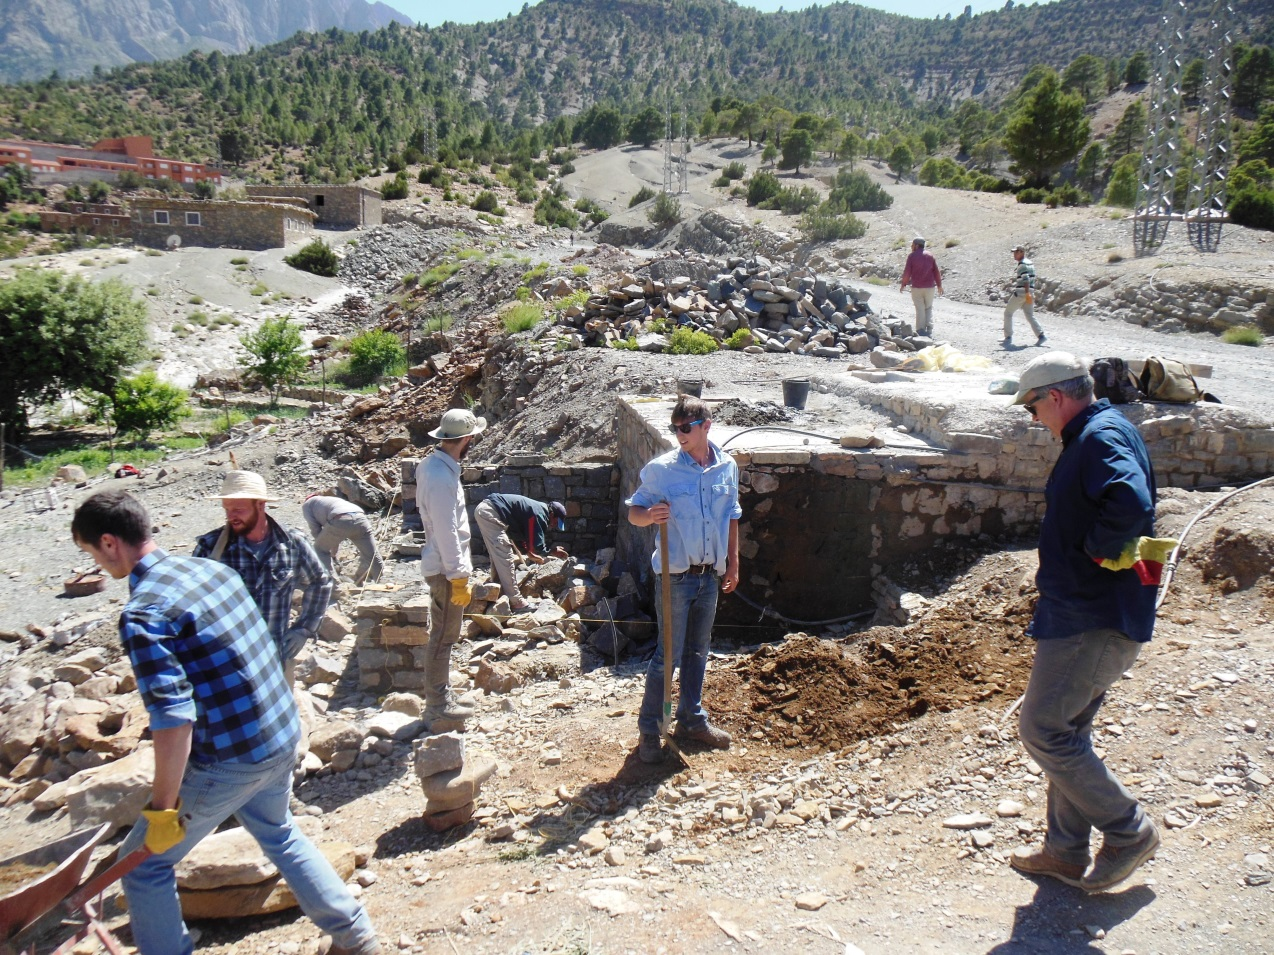 Professor Chris Livingston (right) directing his students in construction of the water fountain at the Amezray water chateau.